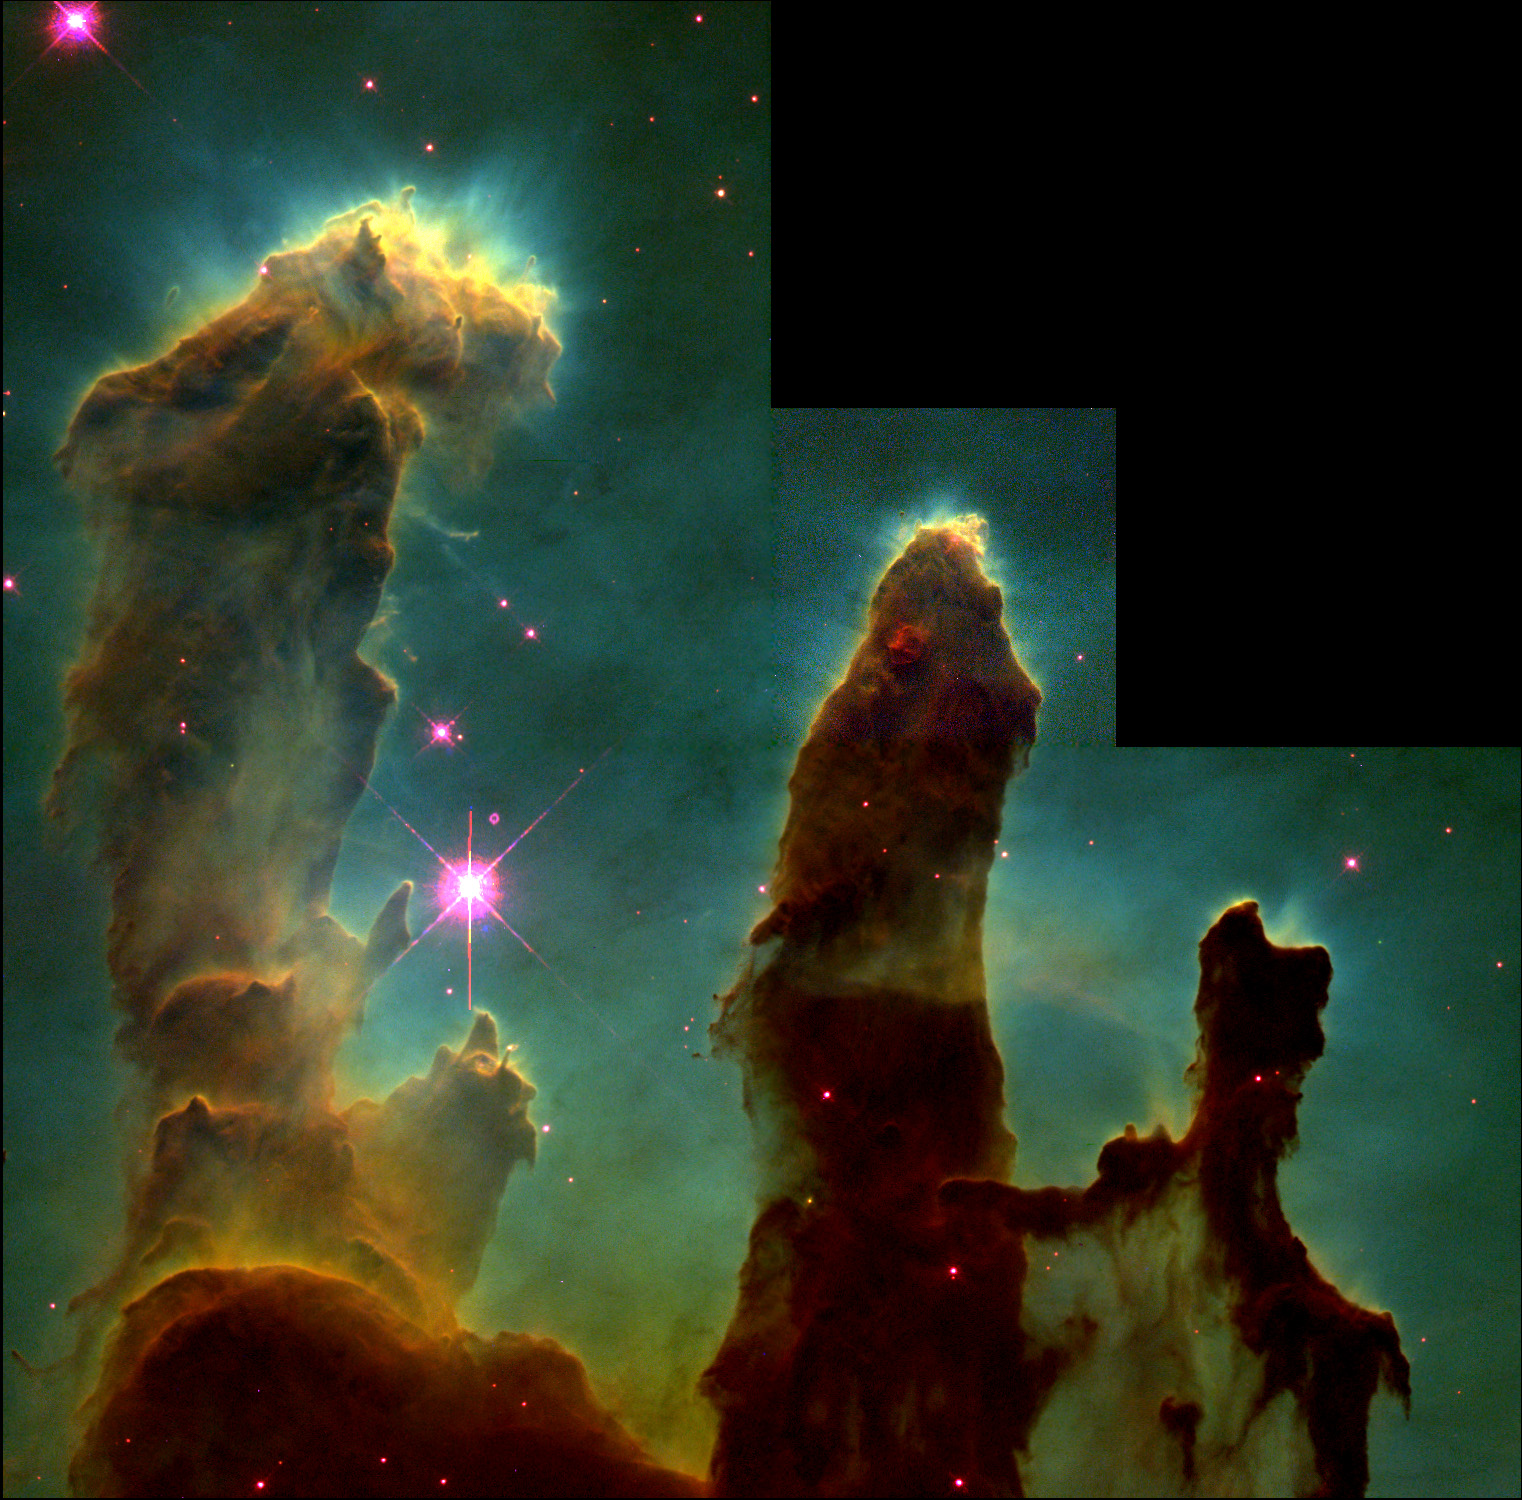 The Pillars of Creation as seen by Hubble Credits: NASA/ESA/STScI, Hester & Scowen (Arizona State University)